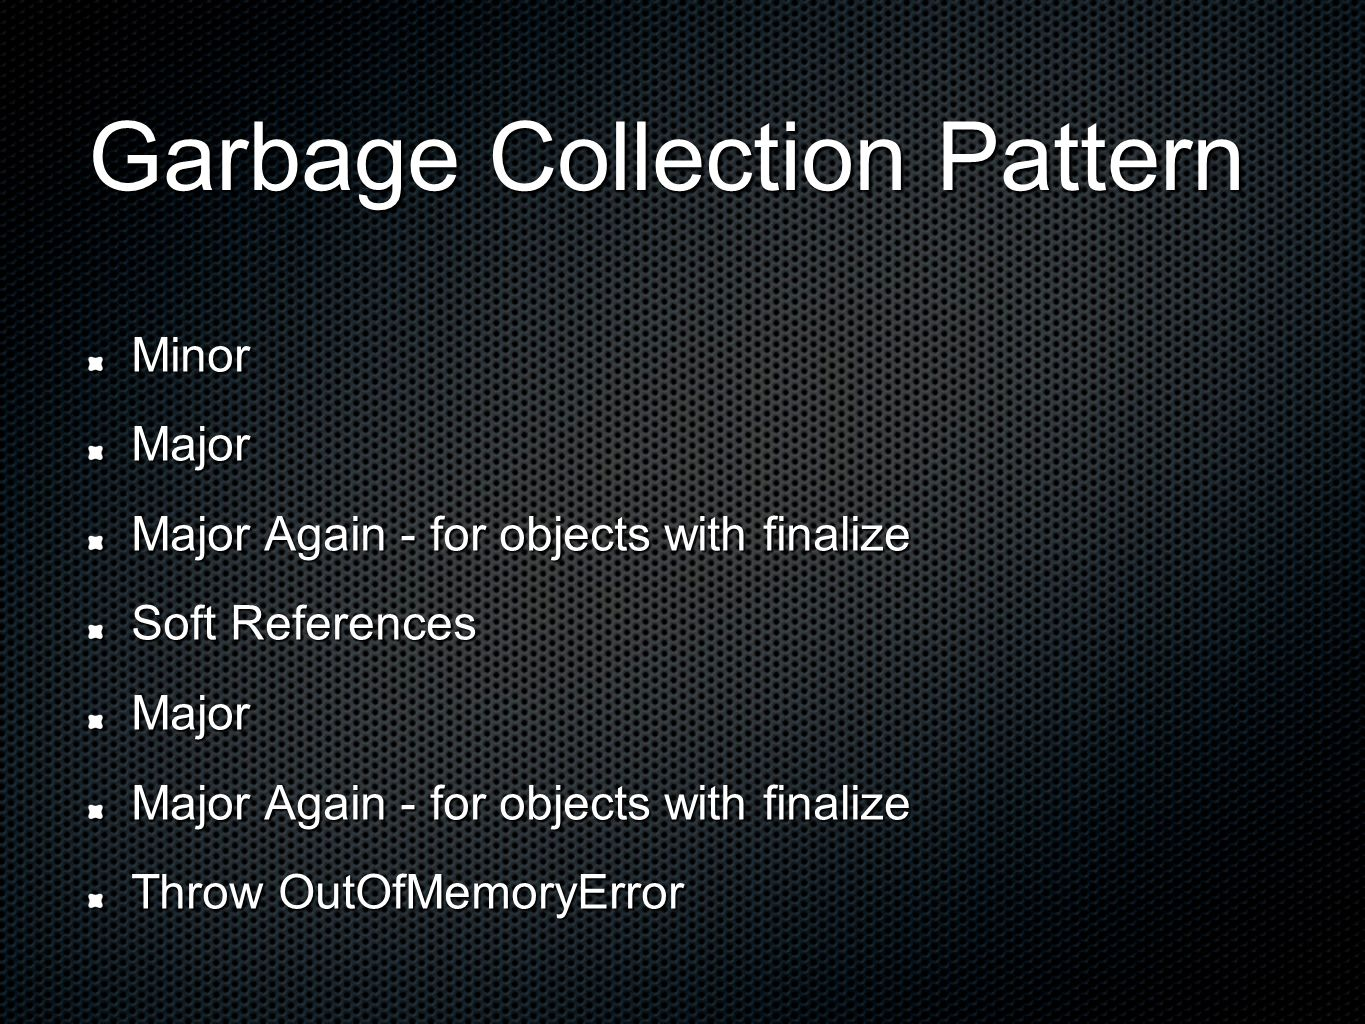 Garbage Collection Pattern MinorMajor Major Again - for objects with finalize Soft References Major Major Again - for objects with finalize Throw OutOfMemoryError